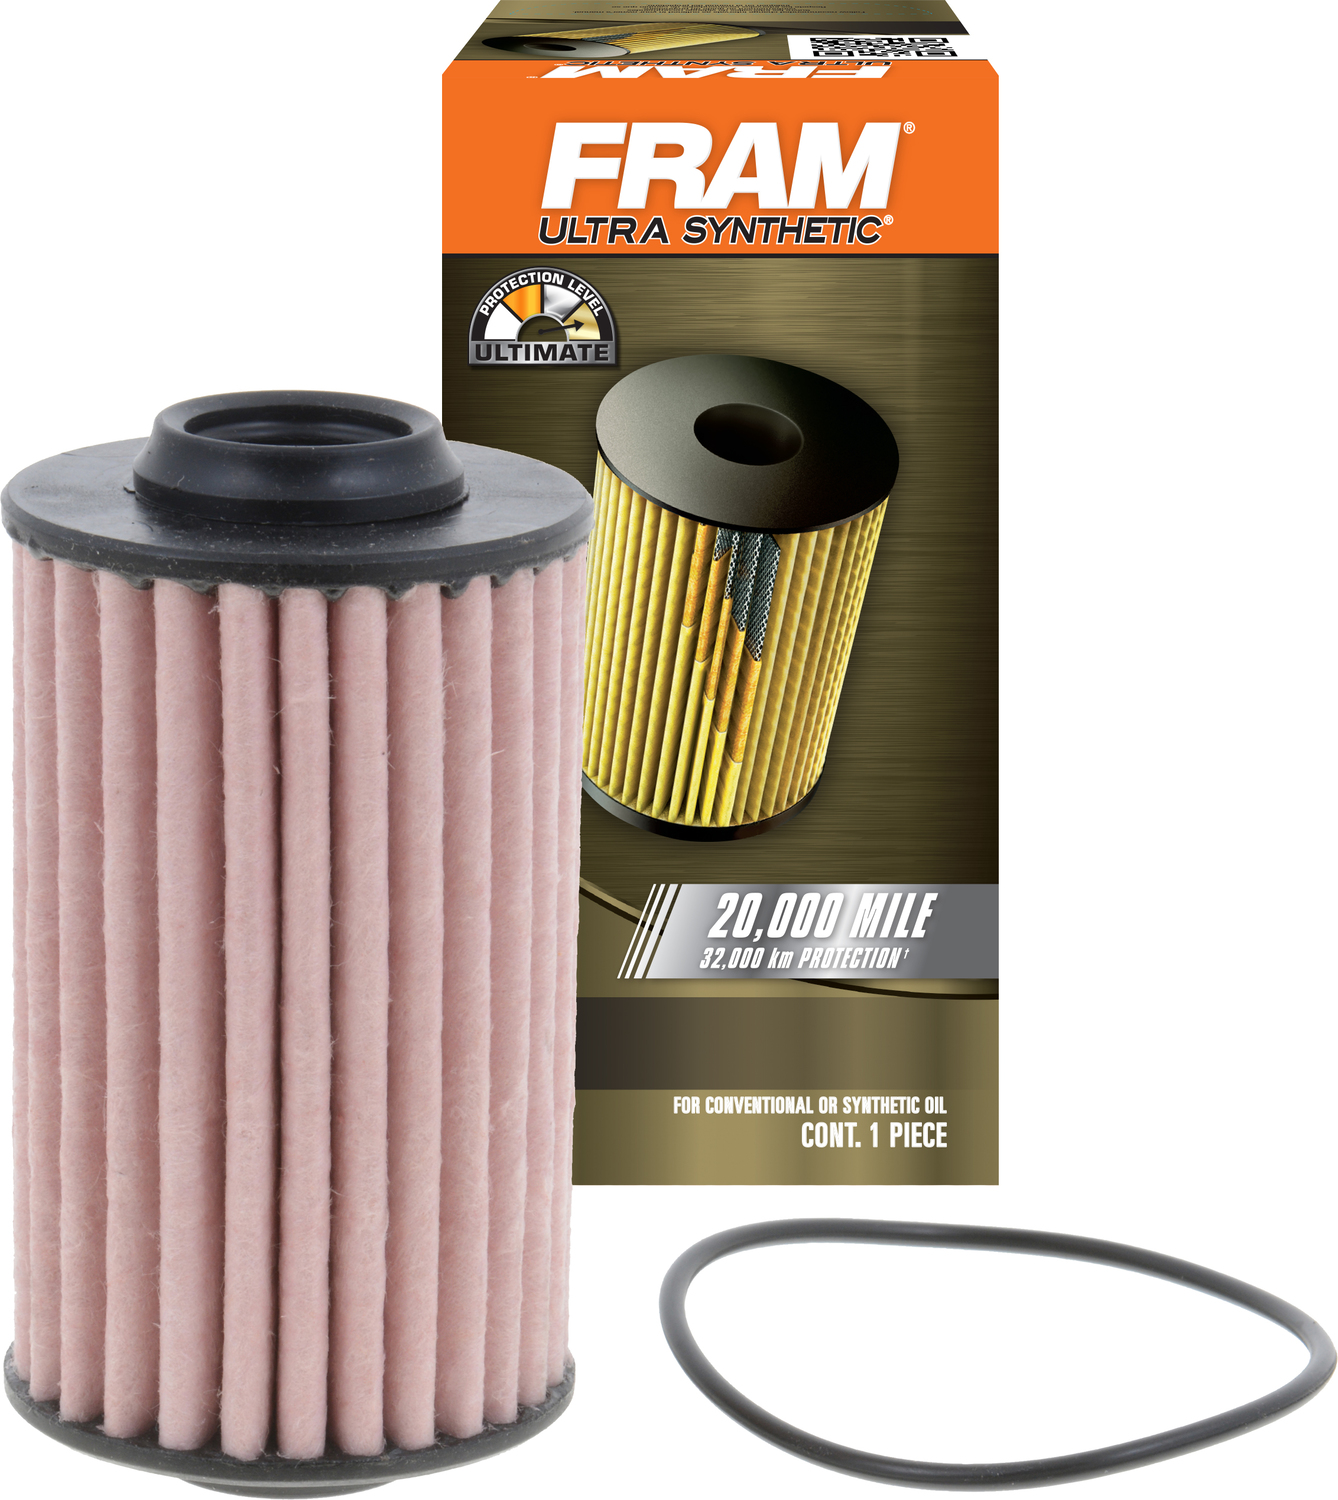 FRAM Ultra Synthetic Oil Filter, XG8765